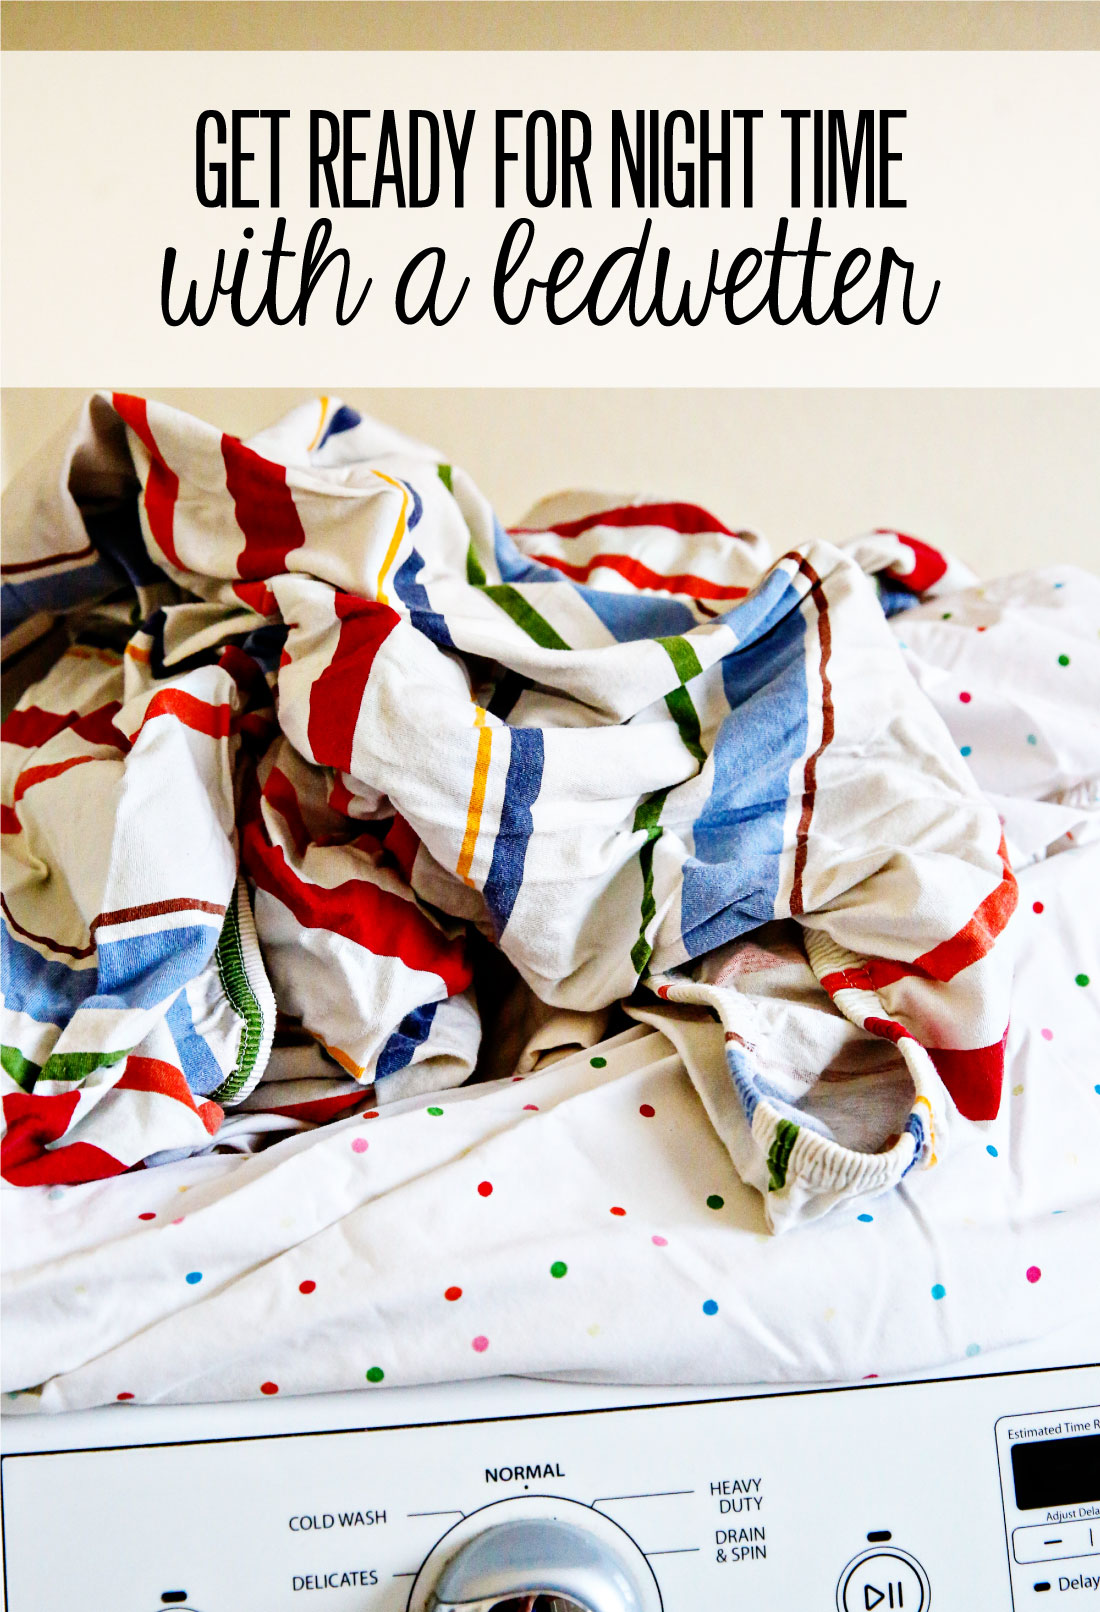 5 tips for getting ready for bed with a bedwetter! When bedwetting is an issue --- from www.thirtyhandmadedays.com